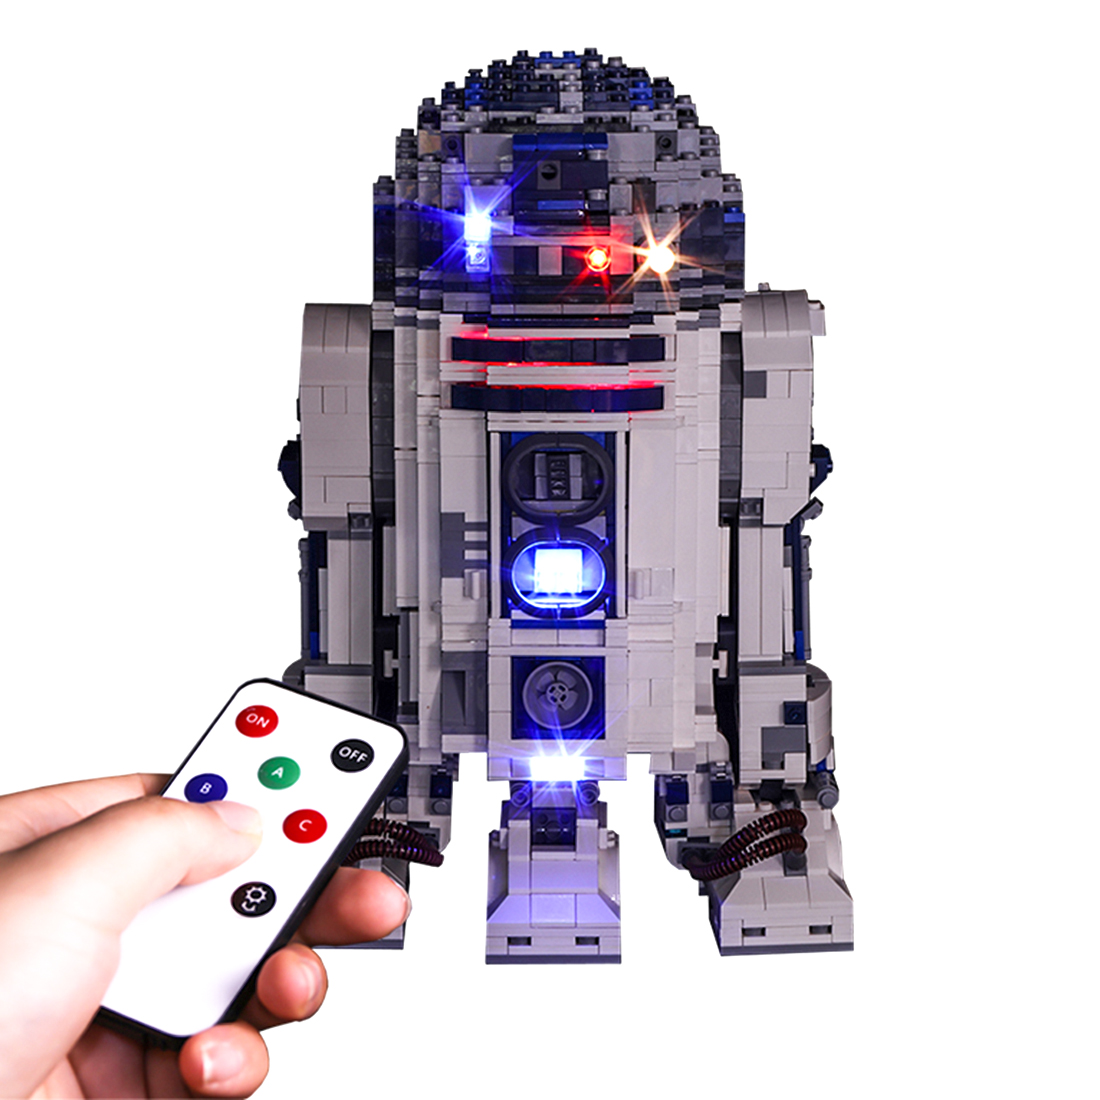 Vonado LED Light Building Block Accessory Kit for Legoed SDI R2-D2 Robot 10225 With Remote Control Switch Module ( Light Only)Vonado LED Light Building Block Accessory Kit for Legoed SDI R2-D2 Robot 10225 With Remote Control Switch Module ( Light Only)